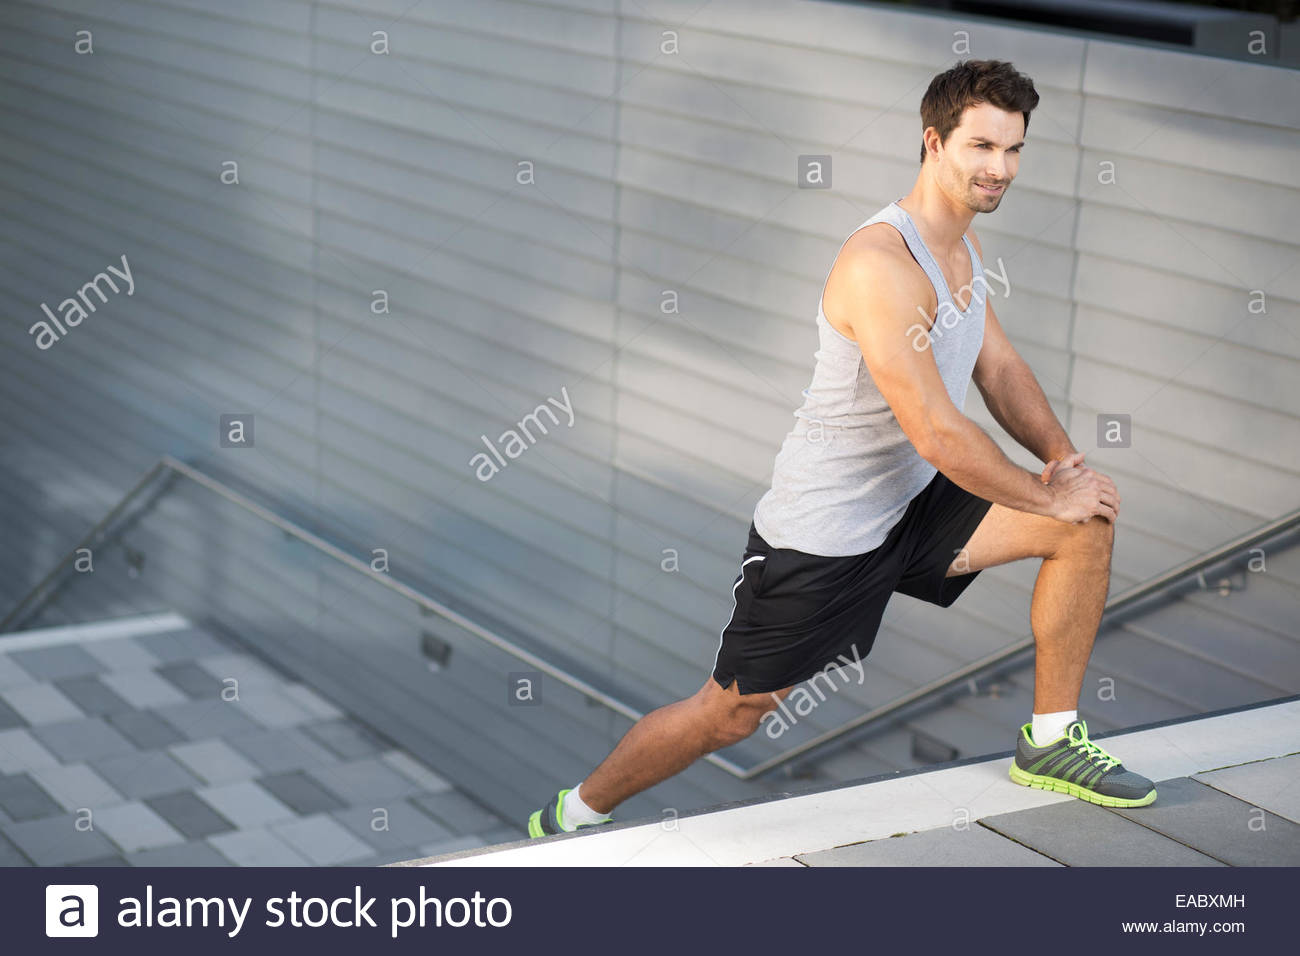 Sportsman doing stretching exercises on a staircase - Stock Image